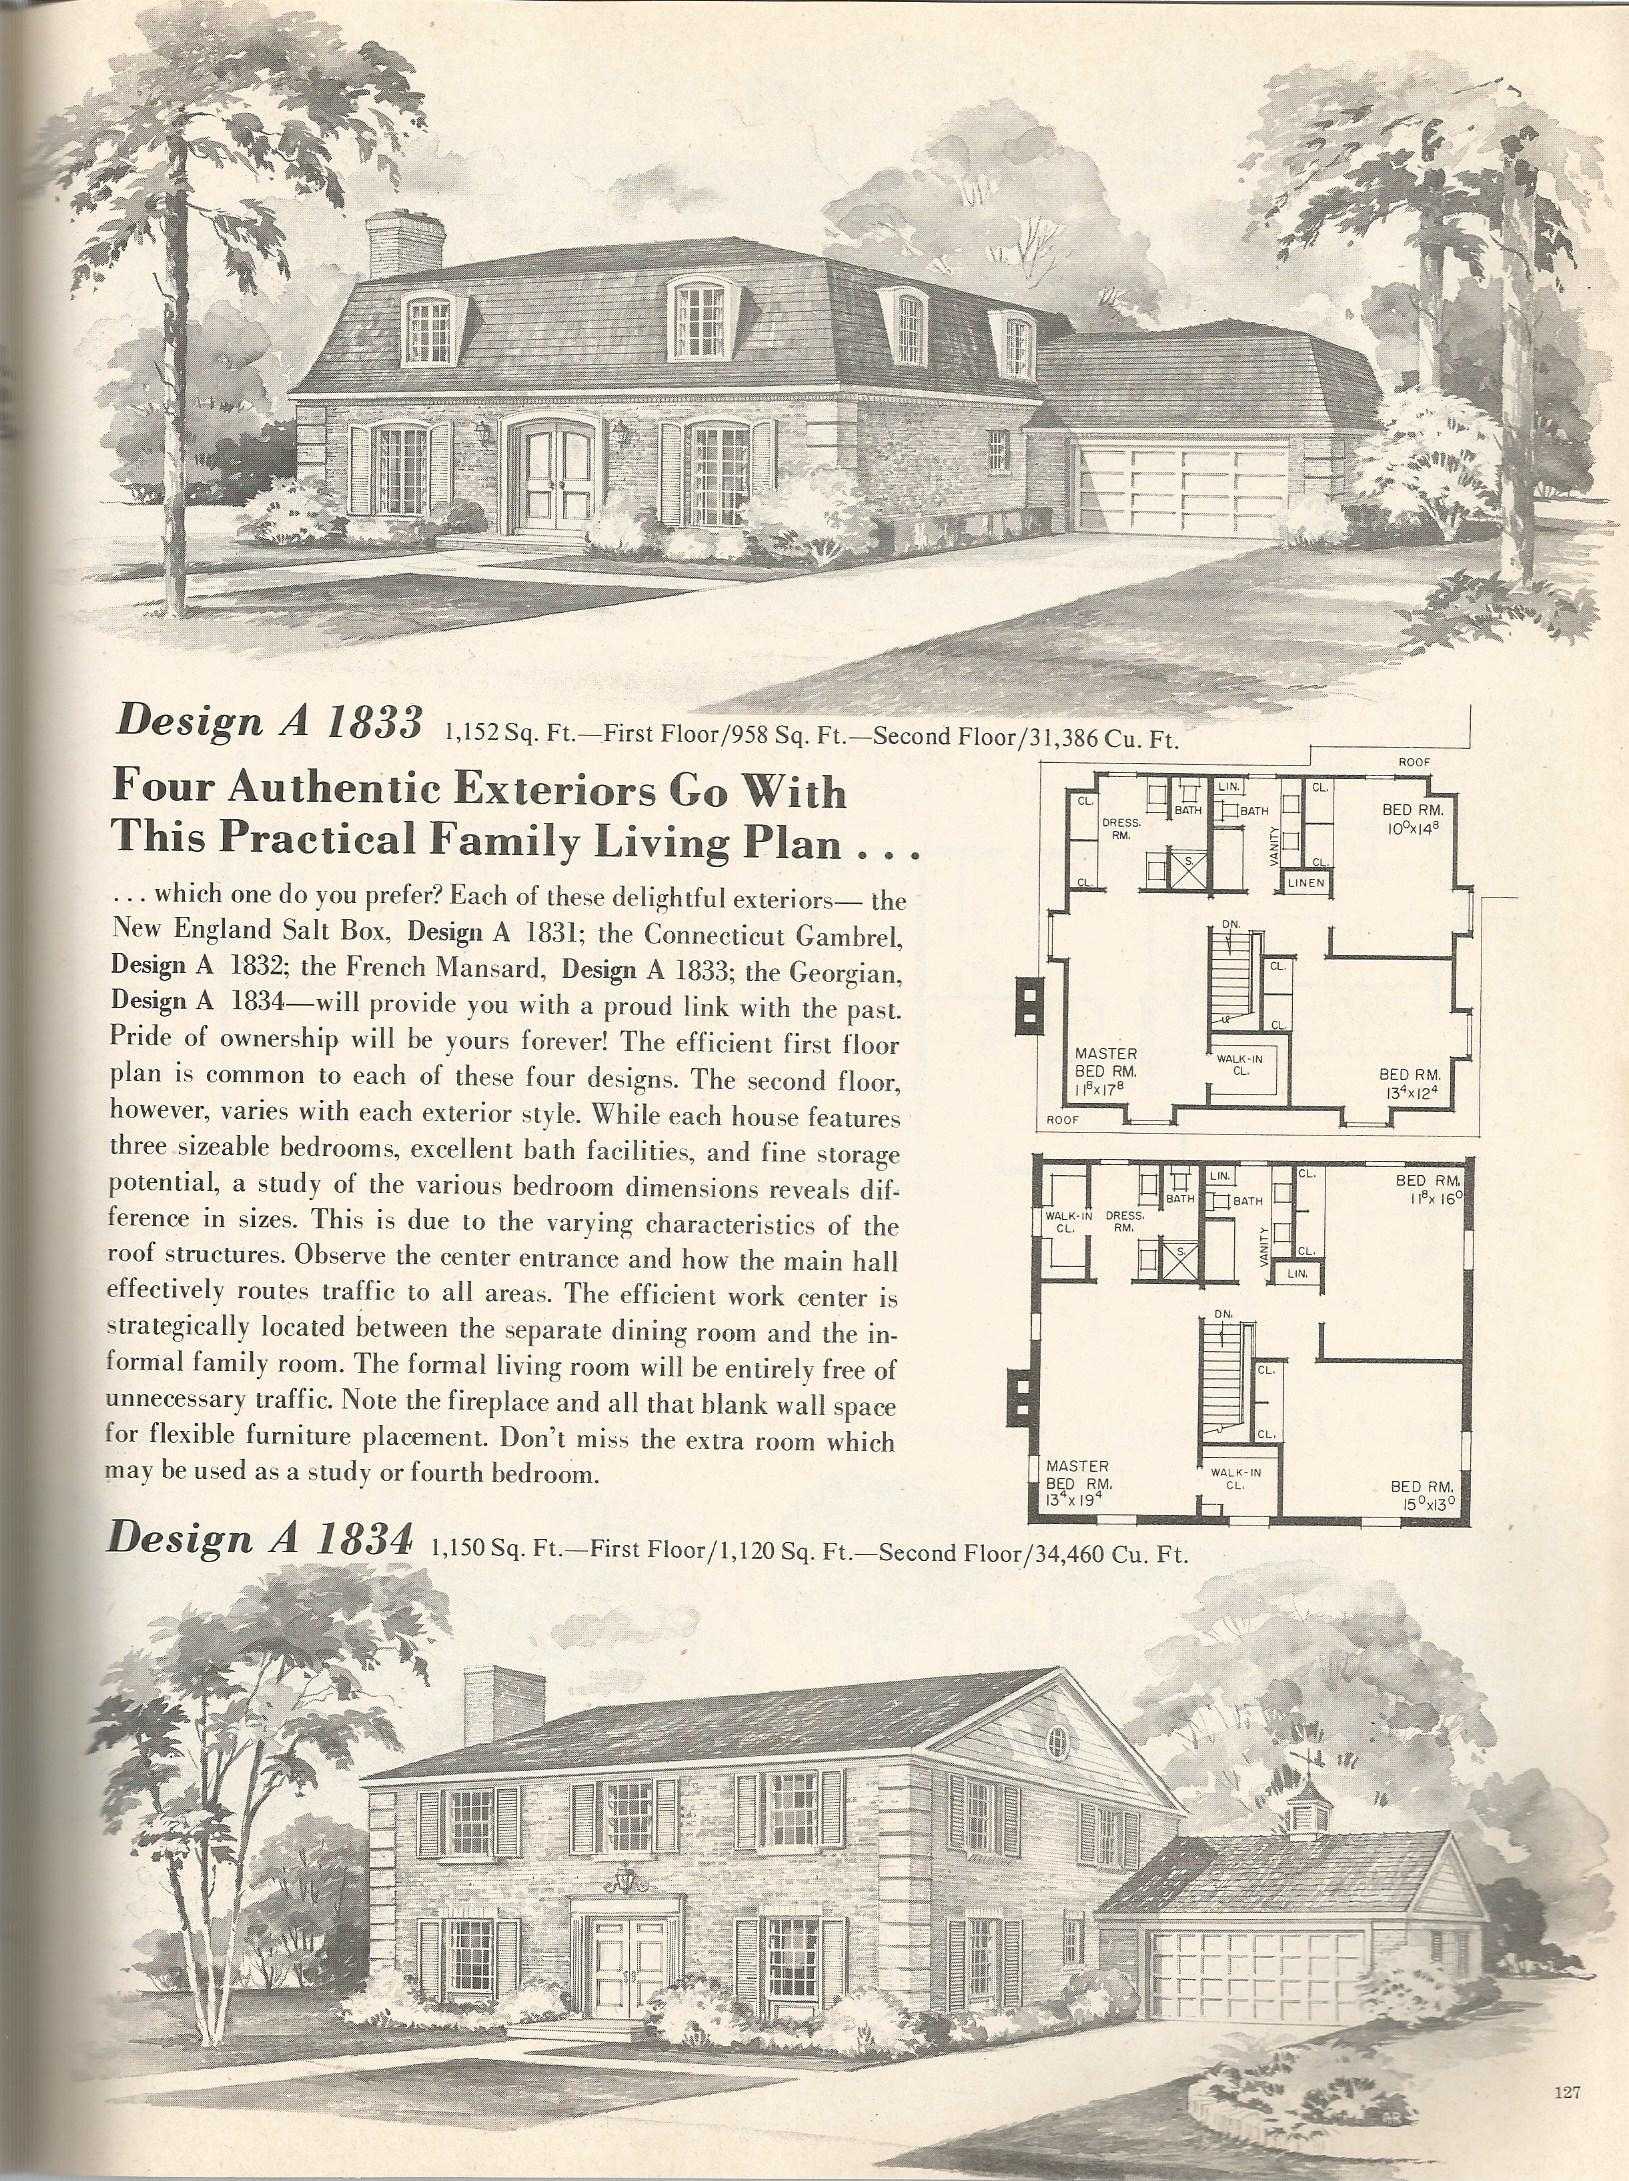 Vintage house plans 1833 antique alter ego for Antique farmhouse plans